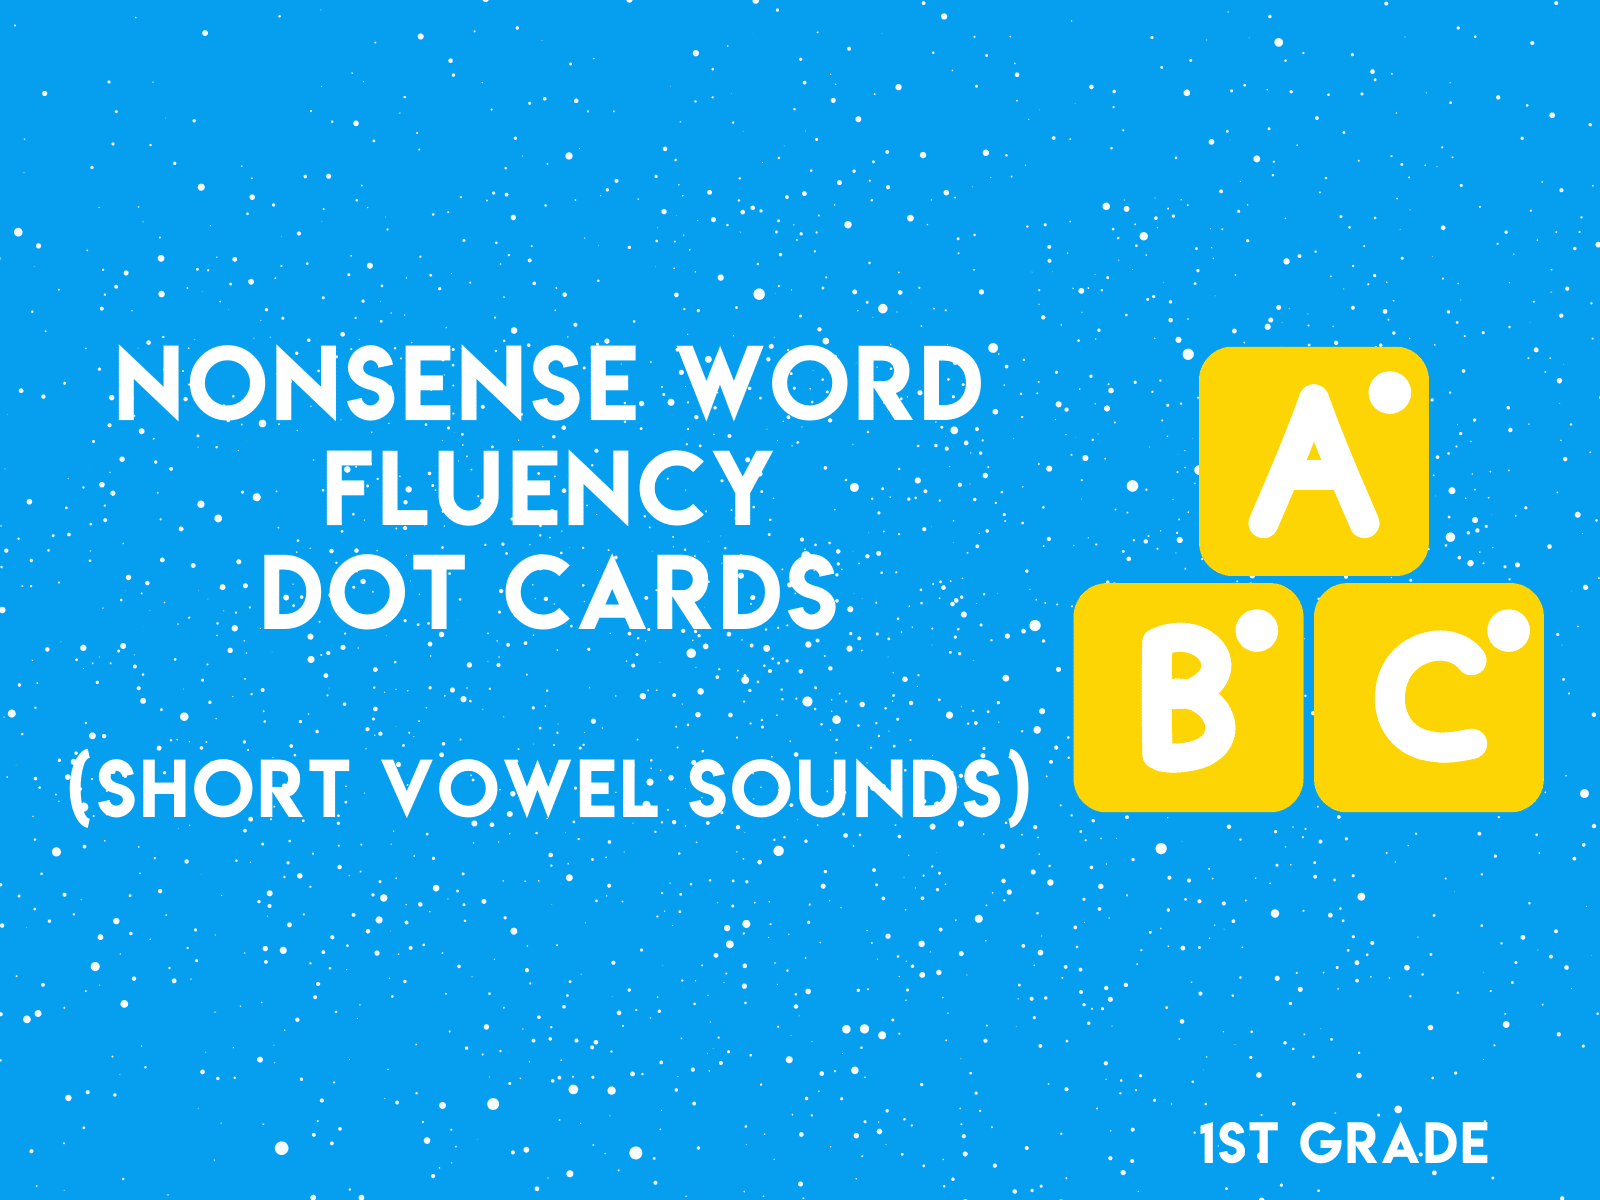 Try out nonsense short vowel fluency dot cards—a free first grade reading resource.